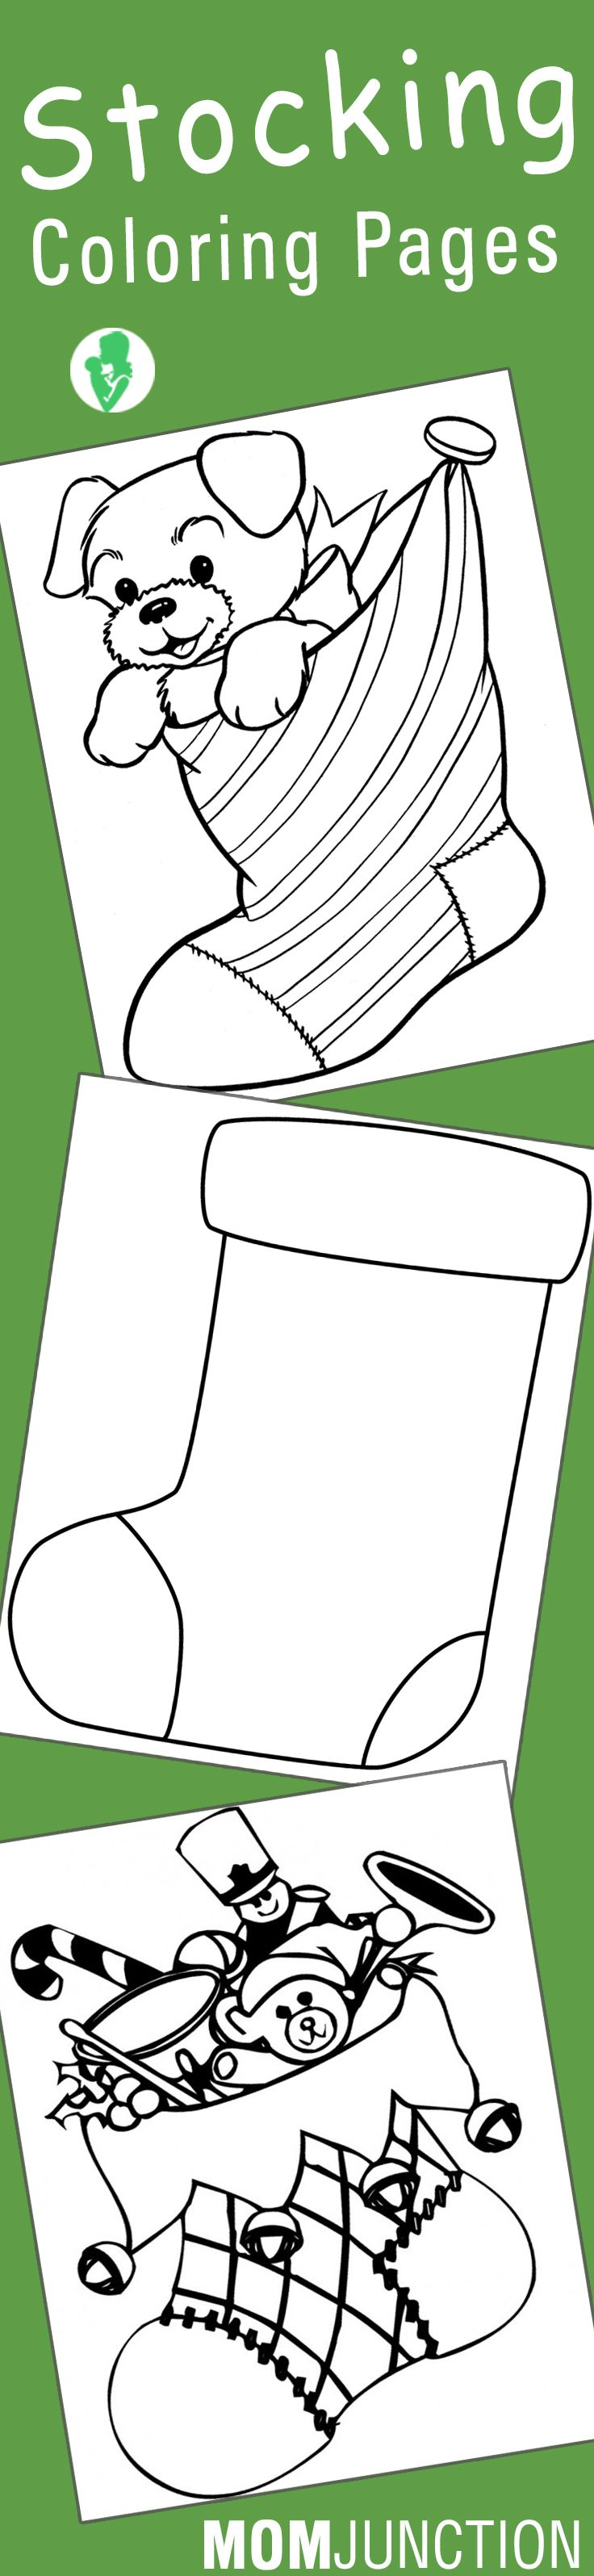 Thanksgiving Abstract Coloring Pages : Best images about on pinterest dovers thanksgiving